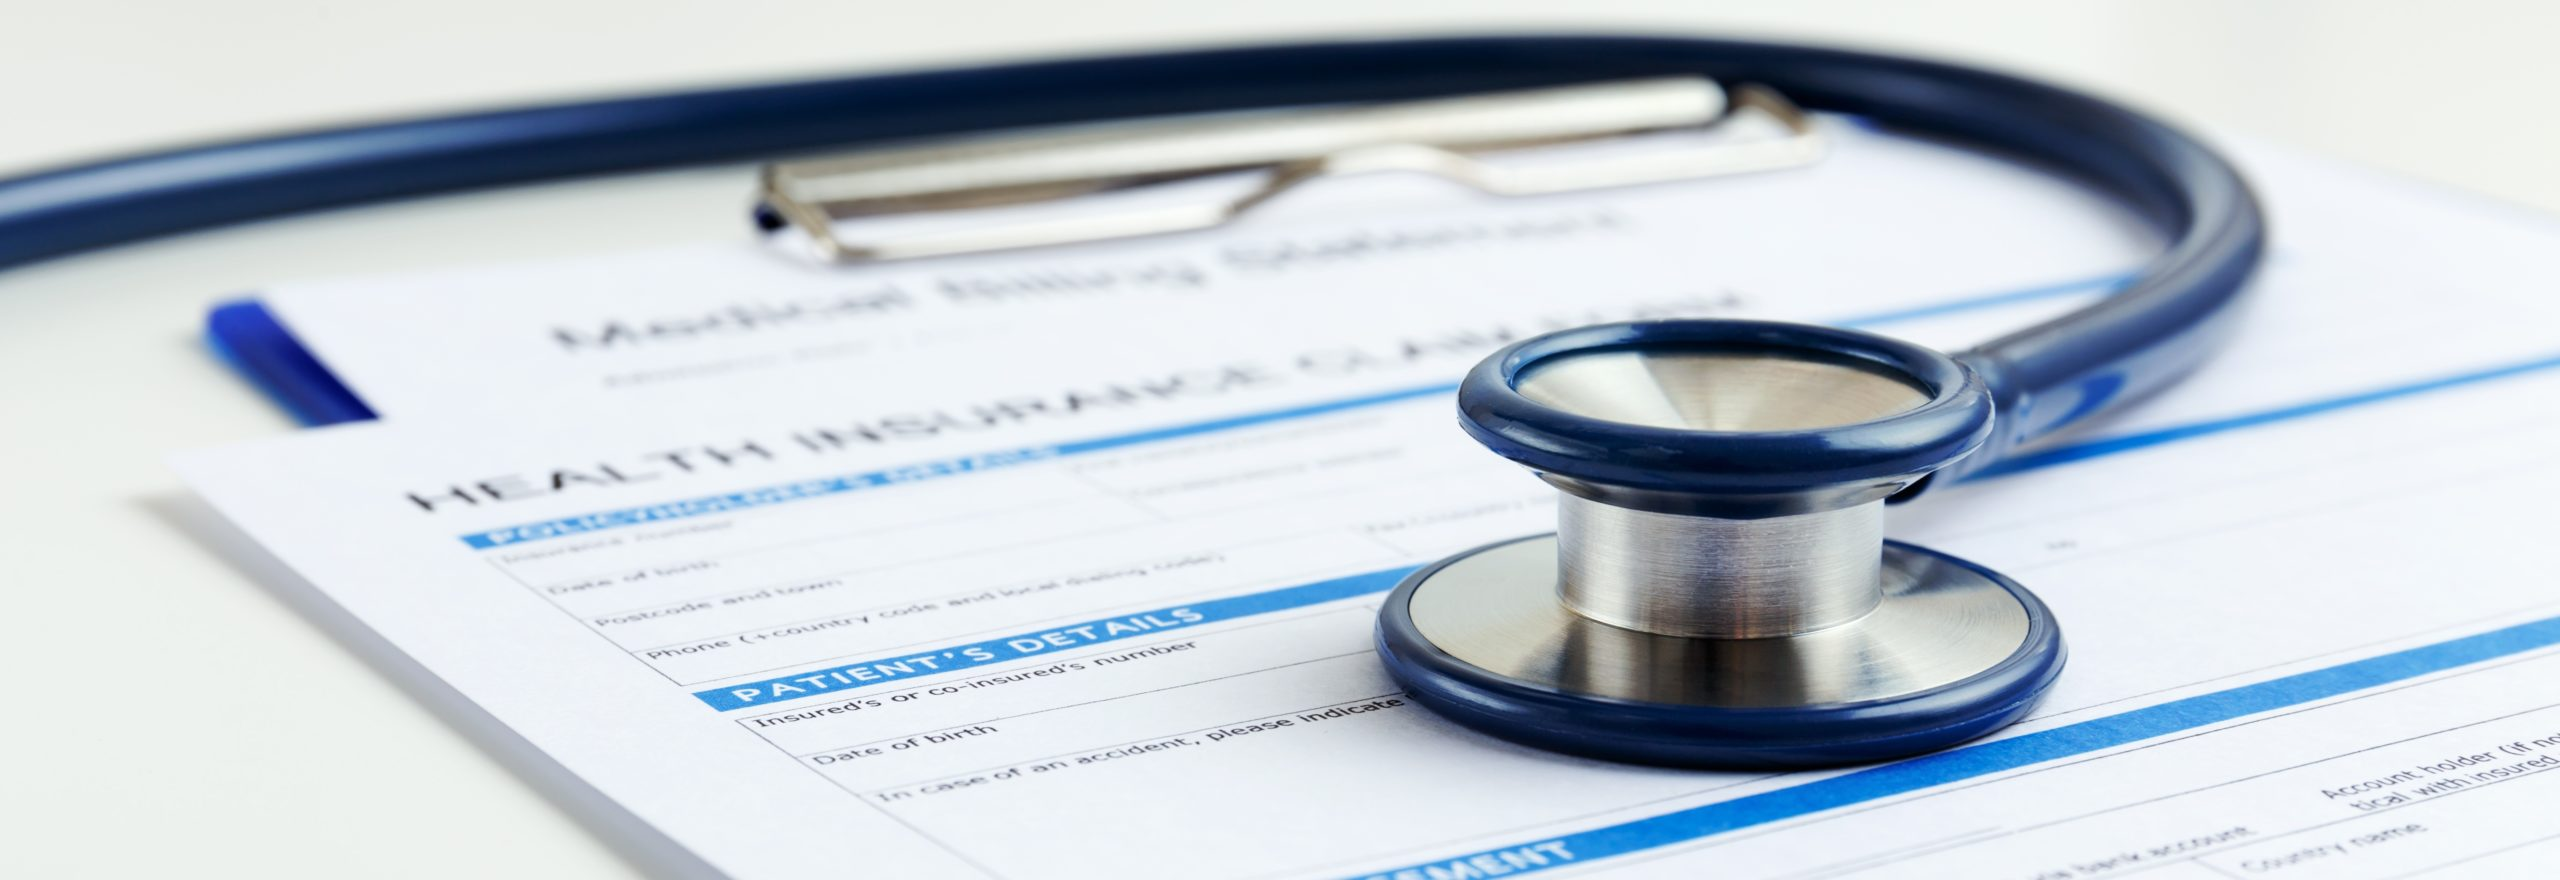 stethoscope on top of health insurance forms